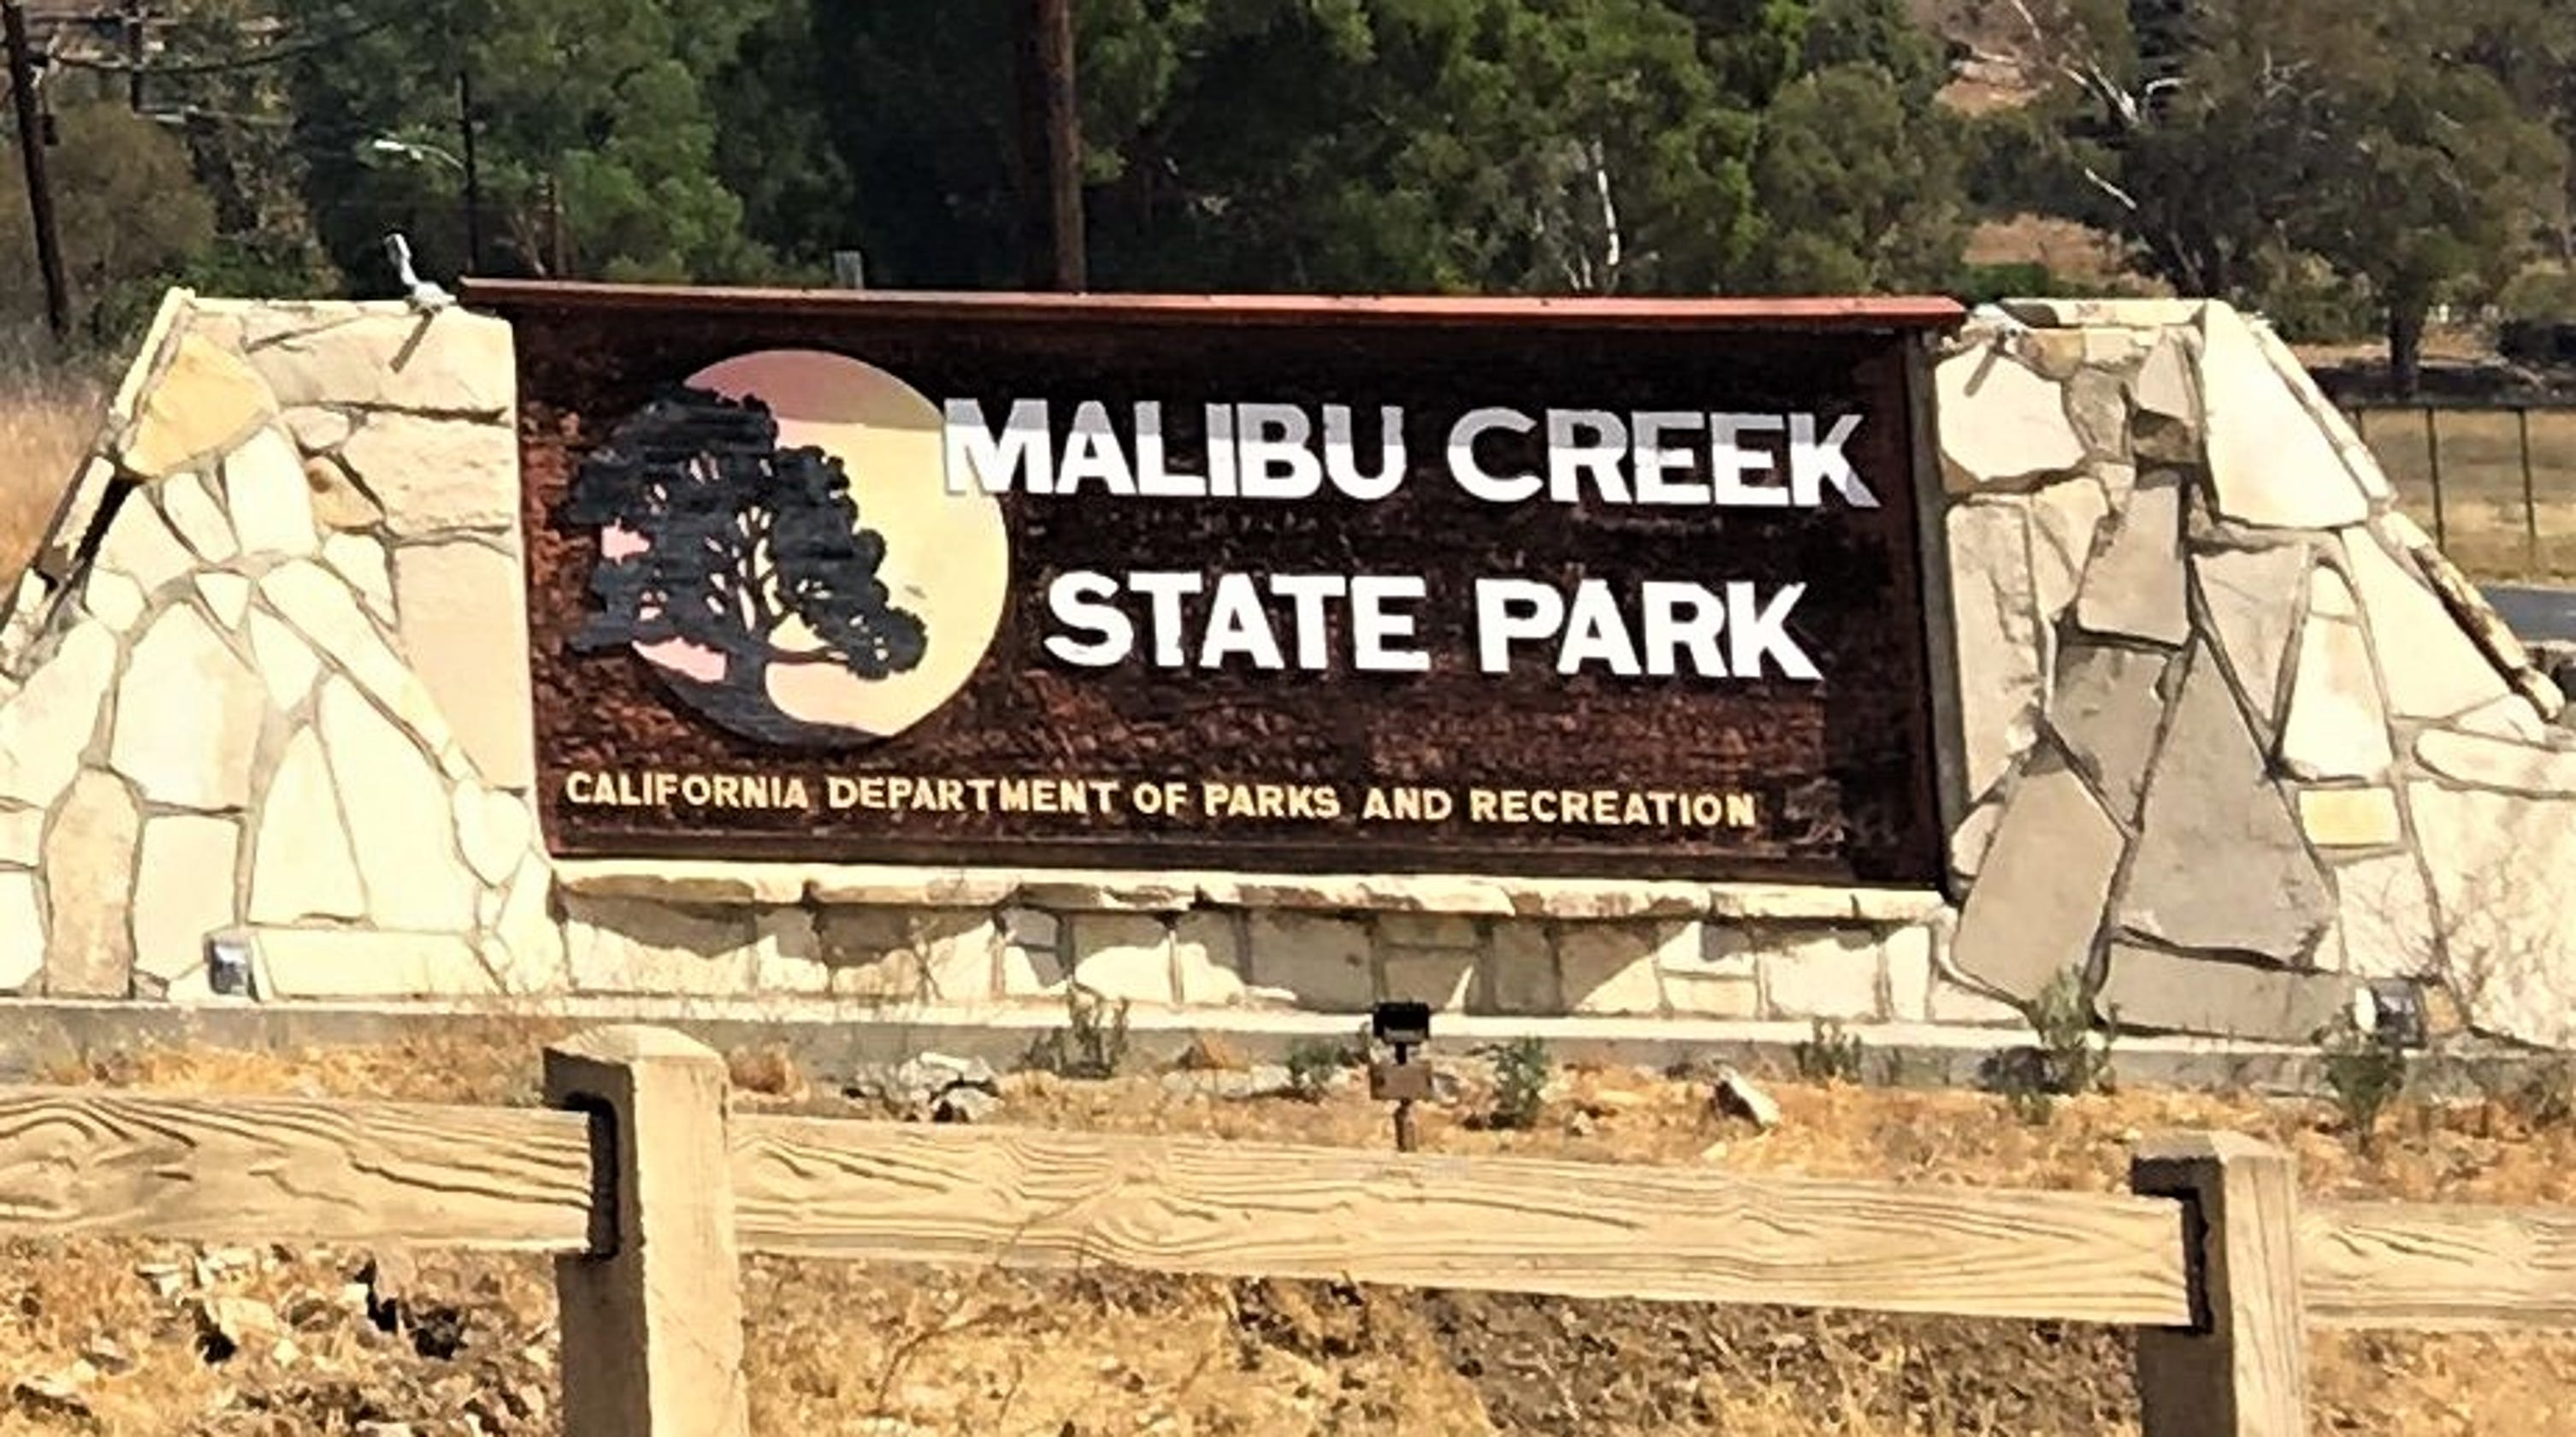 Safety a concern with Malibu Creek State Park shootings